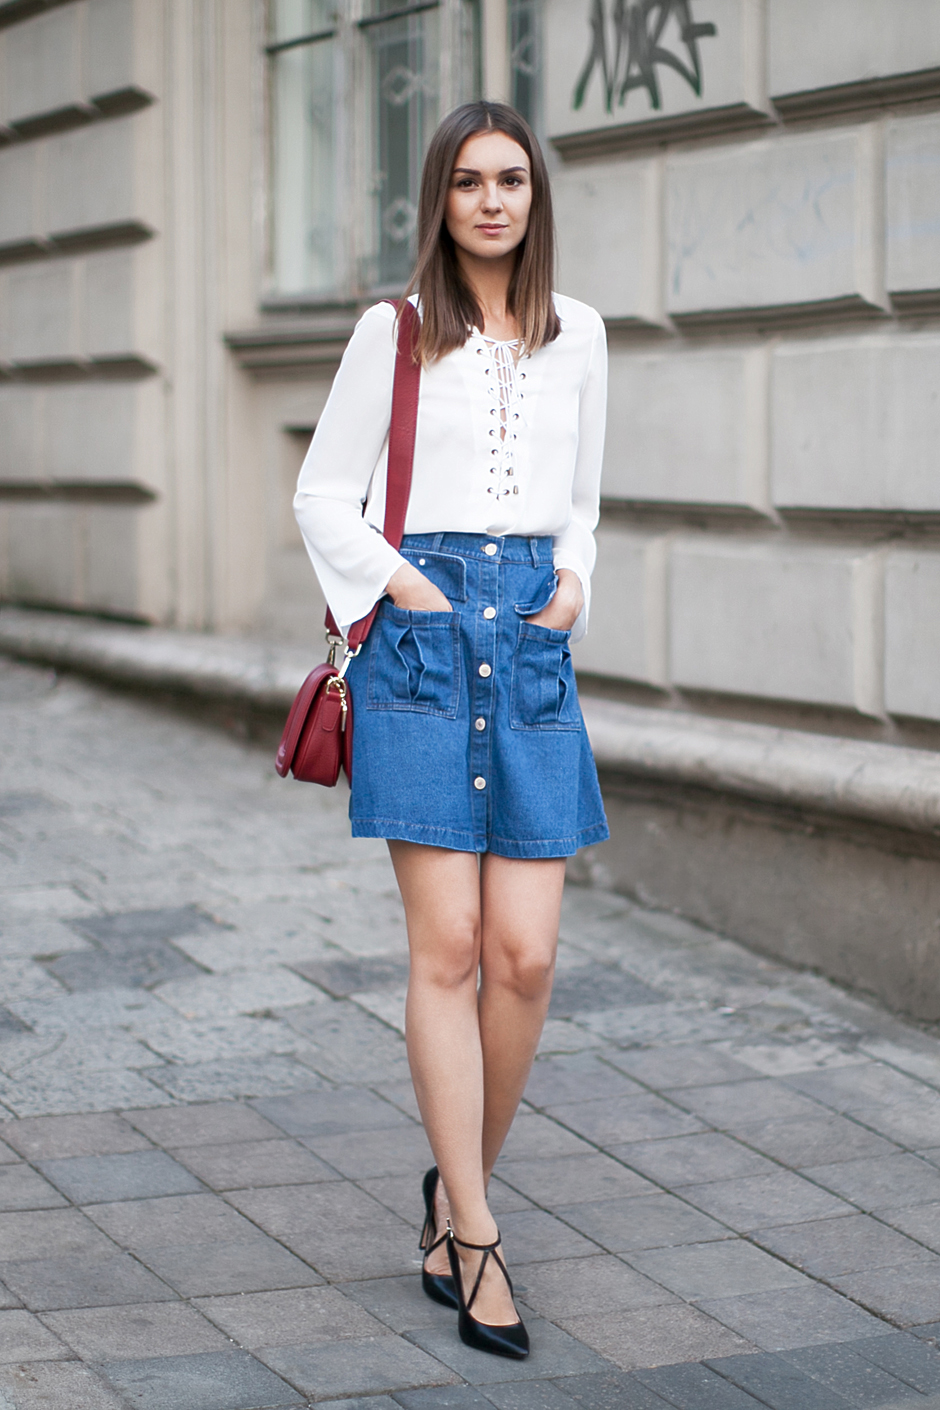 Denim Skirt Fashion Agony Daily Outfits Fashion Trends And Inspiration Fashion Blog By